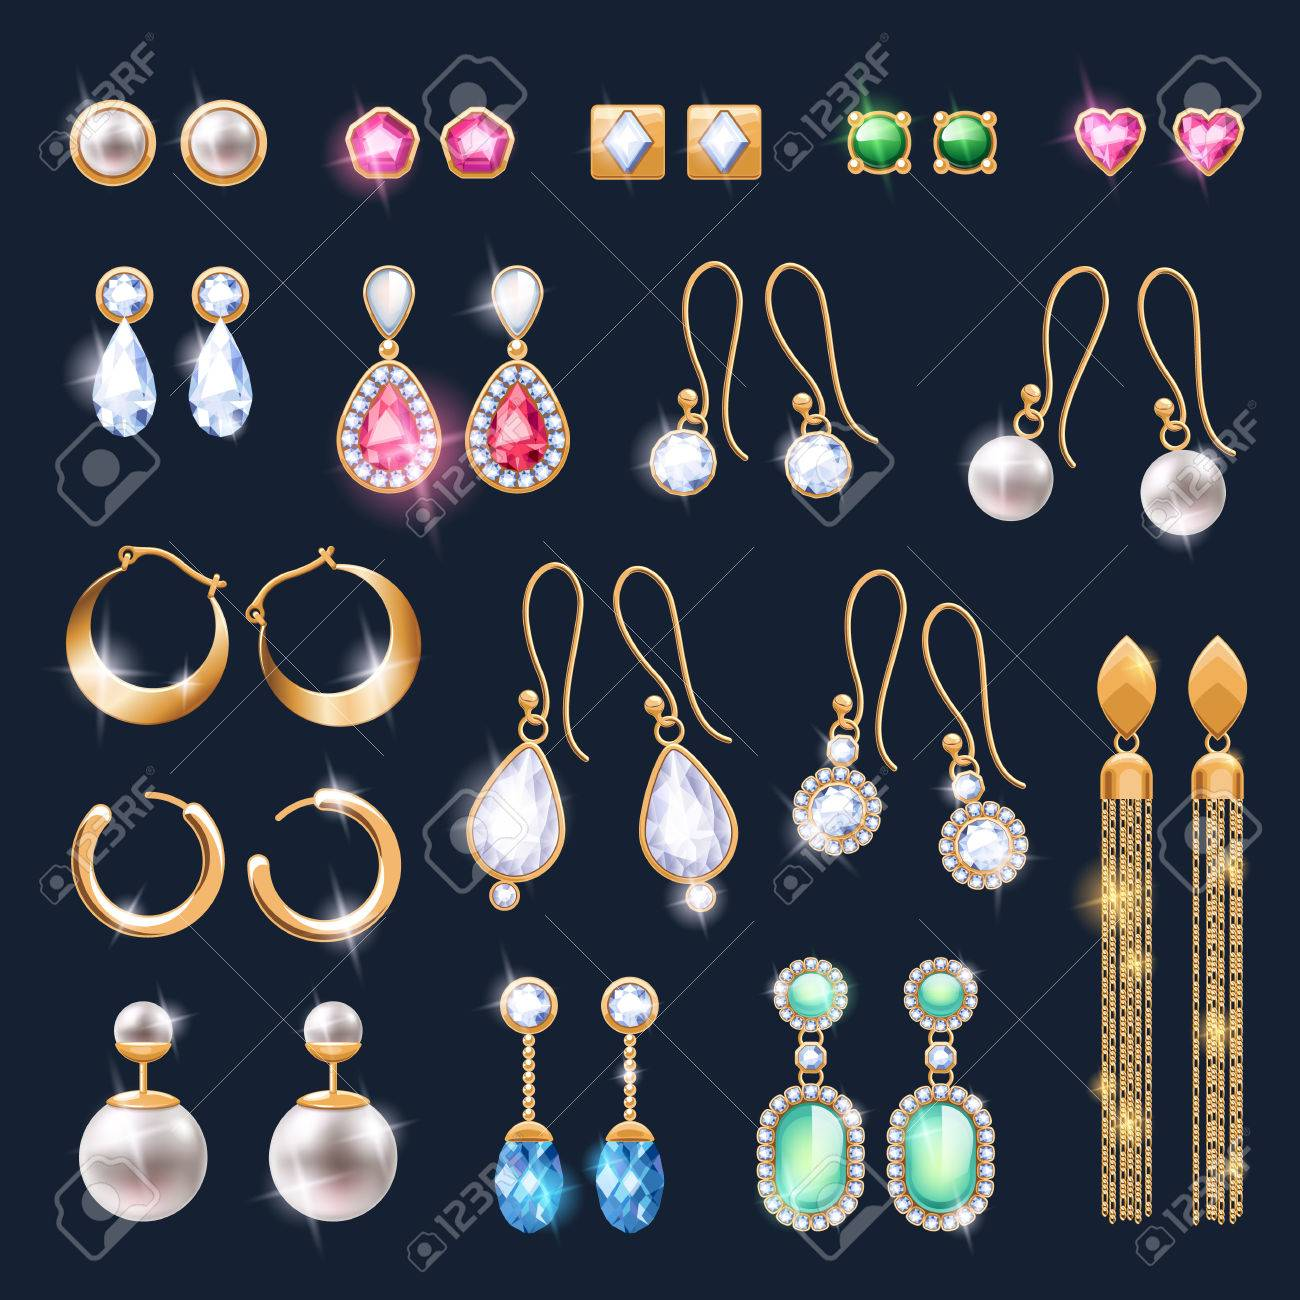 5d3973b83d5 Realistic earrings jewelry accessories icons set. Gold and diamond pearl  gemstones pendant vector illustration.